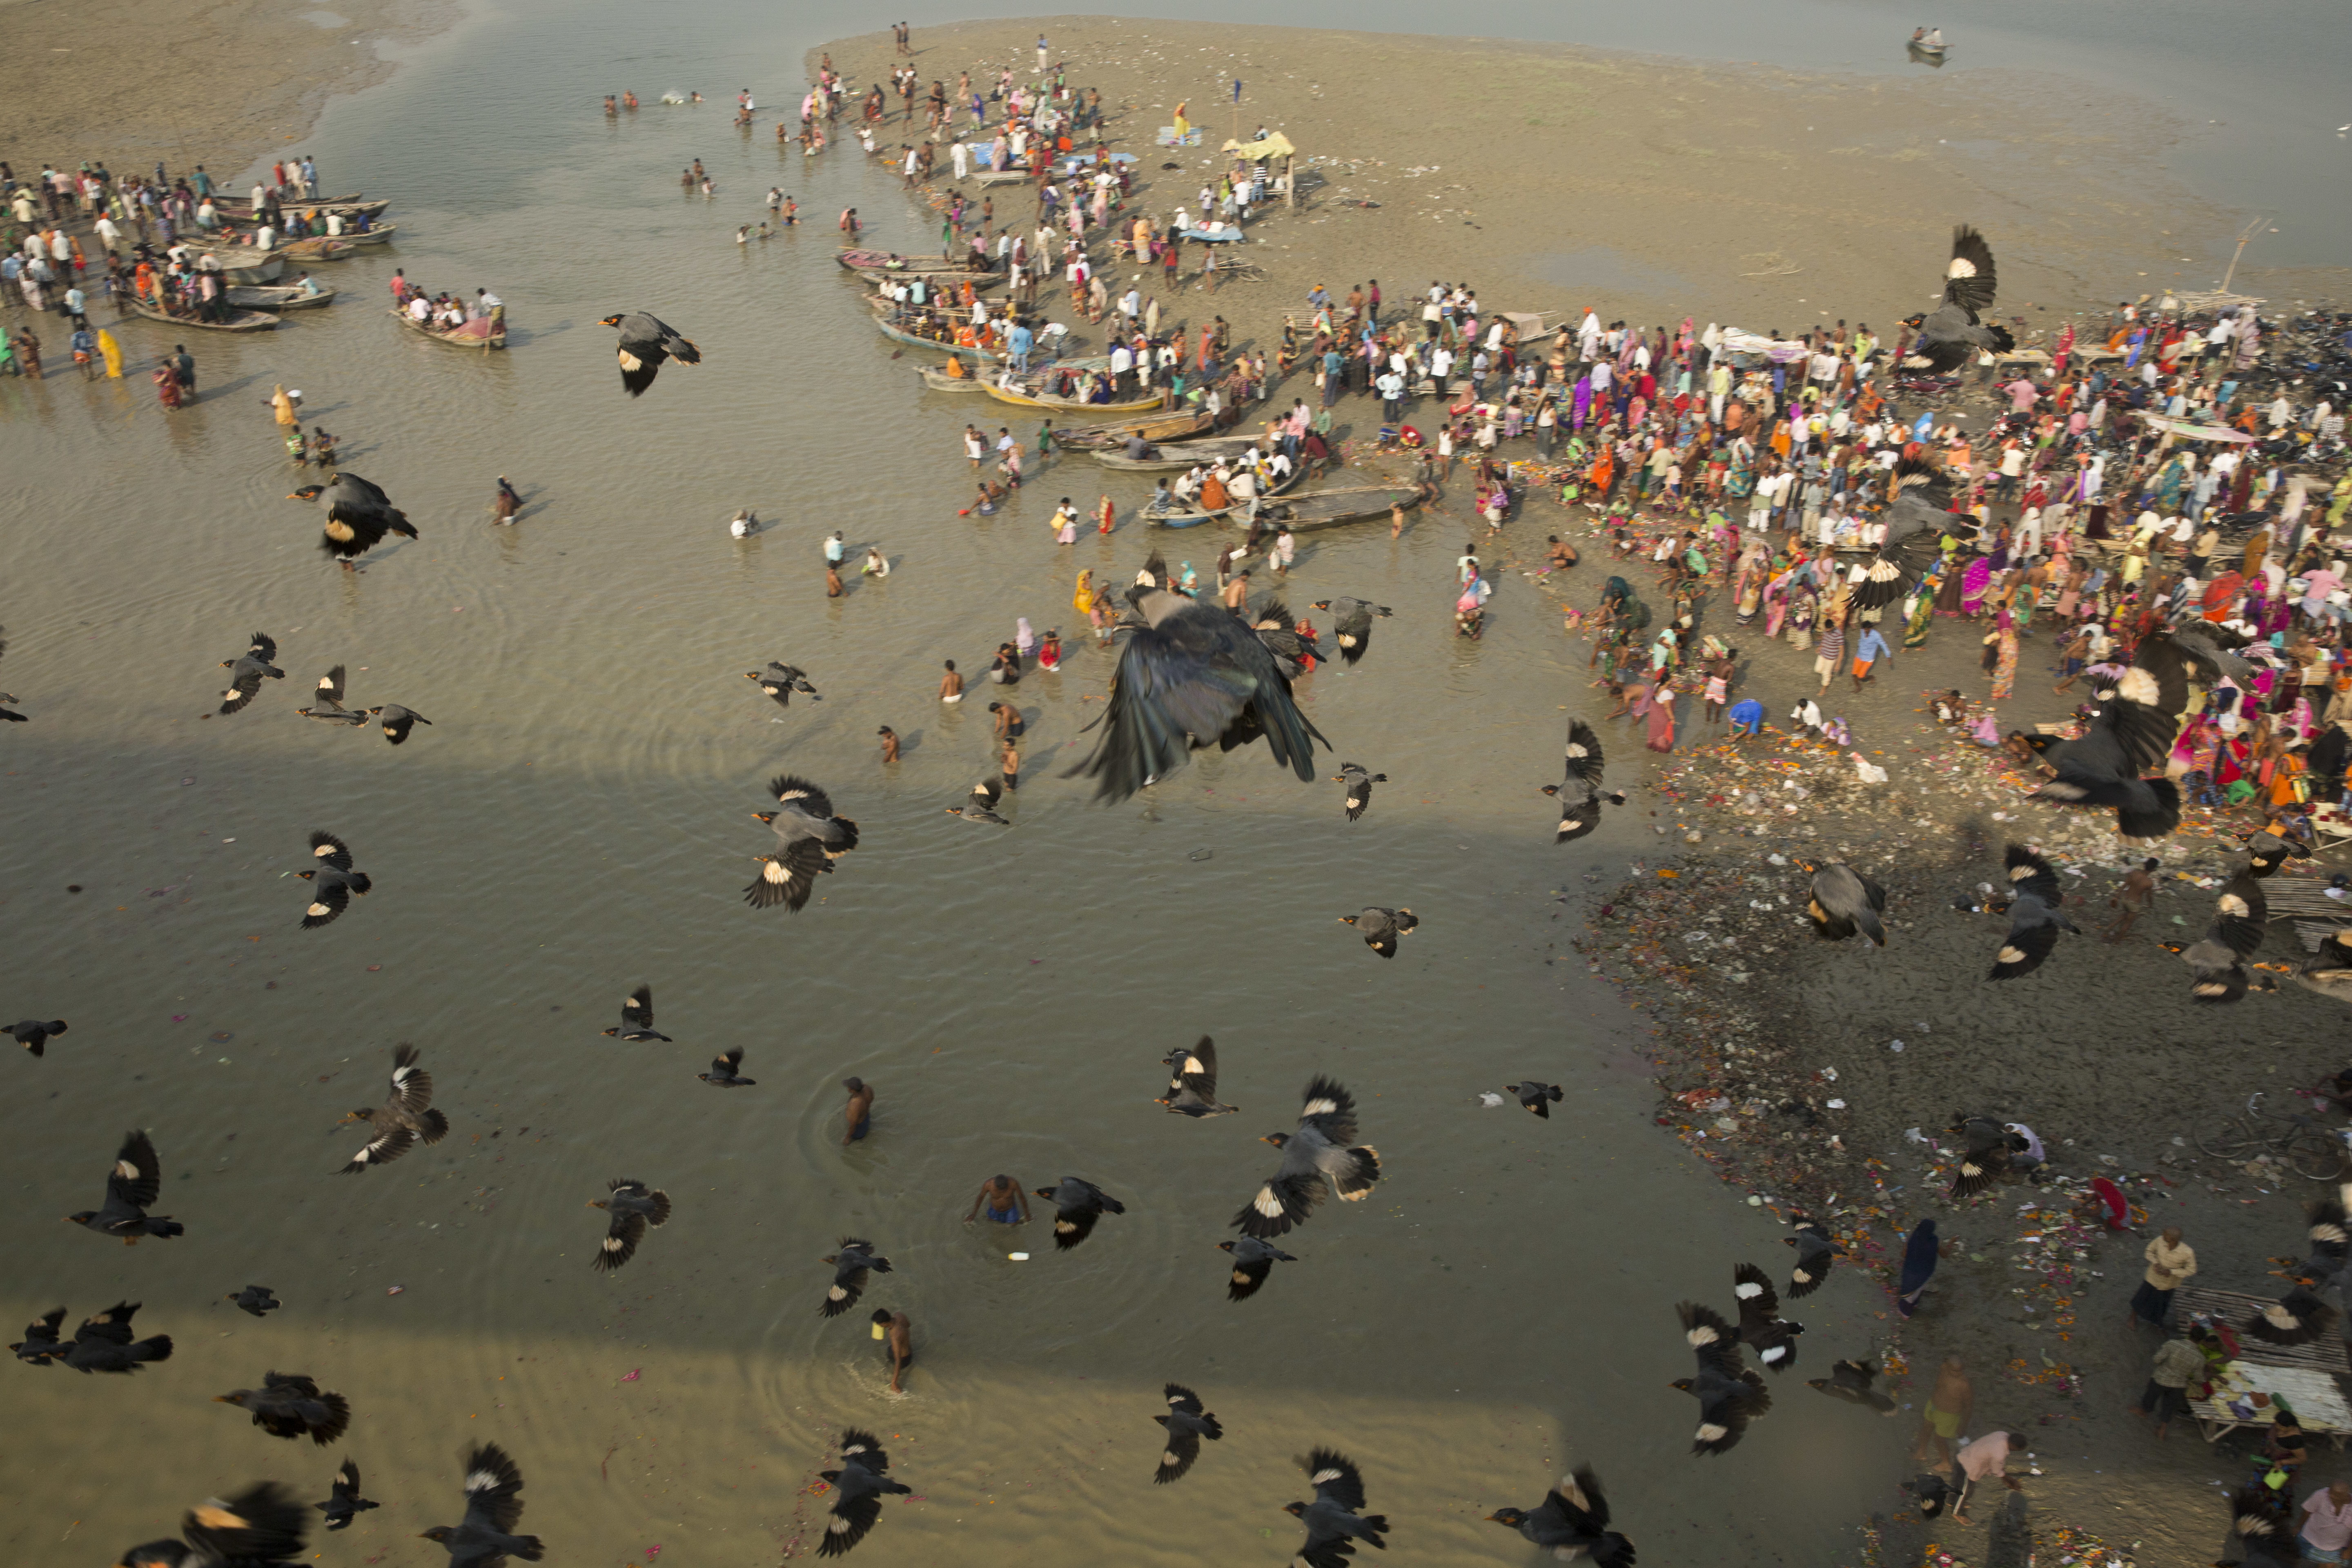 Indian Hindu devotees perform morning rituals in the Ganges River on the first day of the nine-day Navratri festival in Allahabad, India - AP